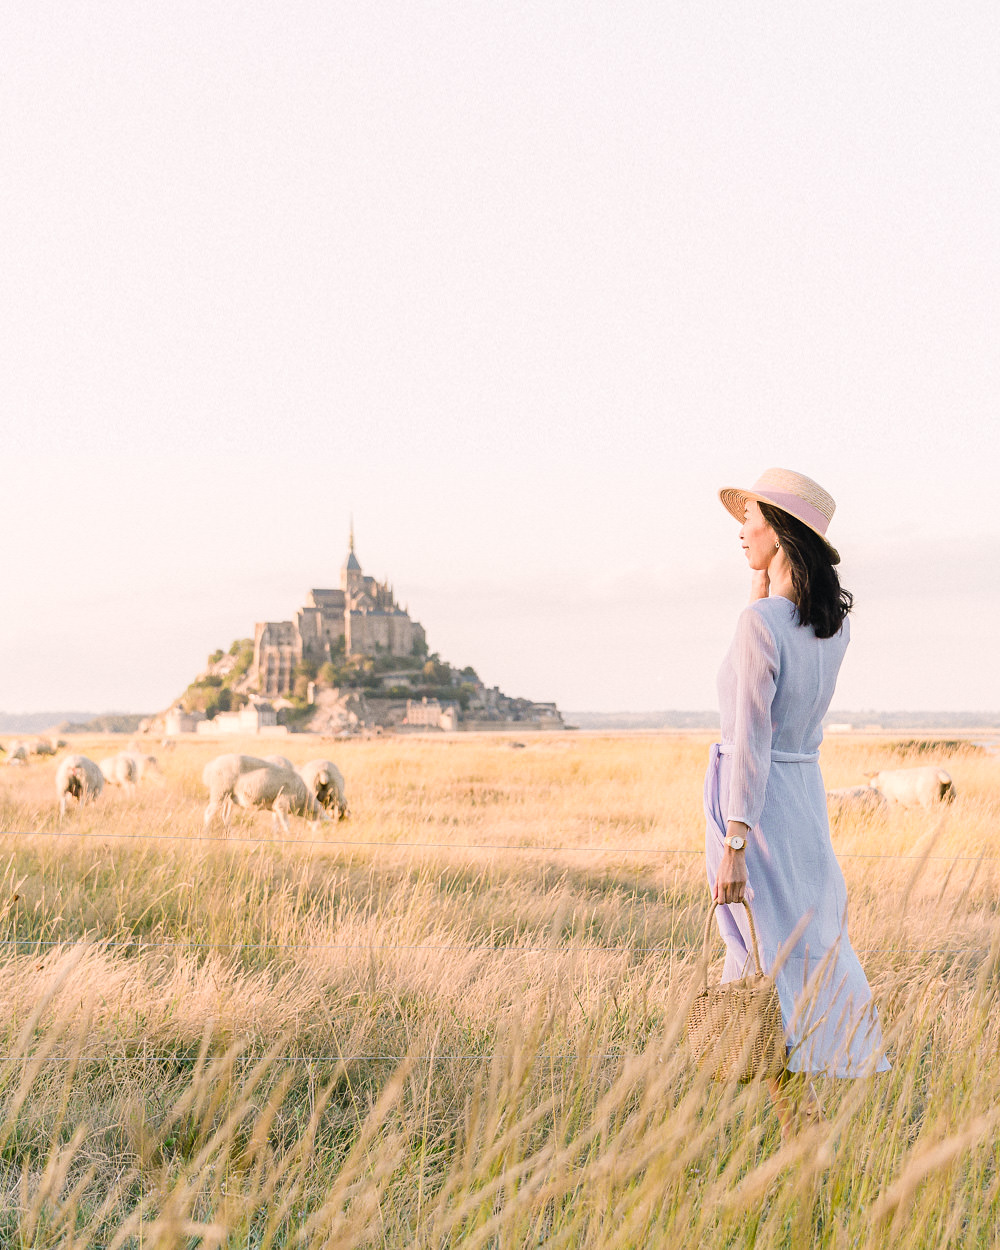 Visiting the Magical Mont Saint-Michel